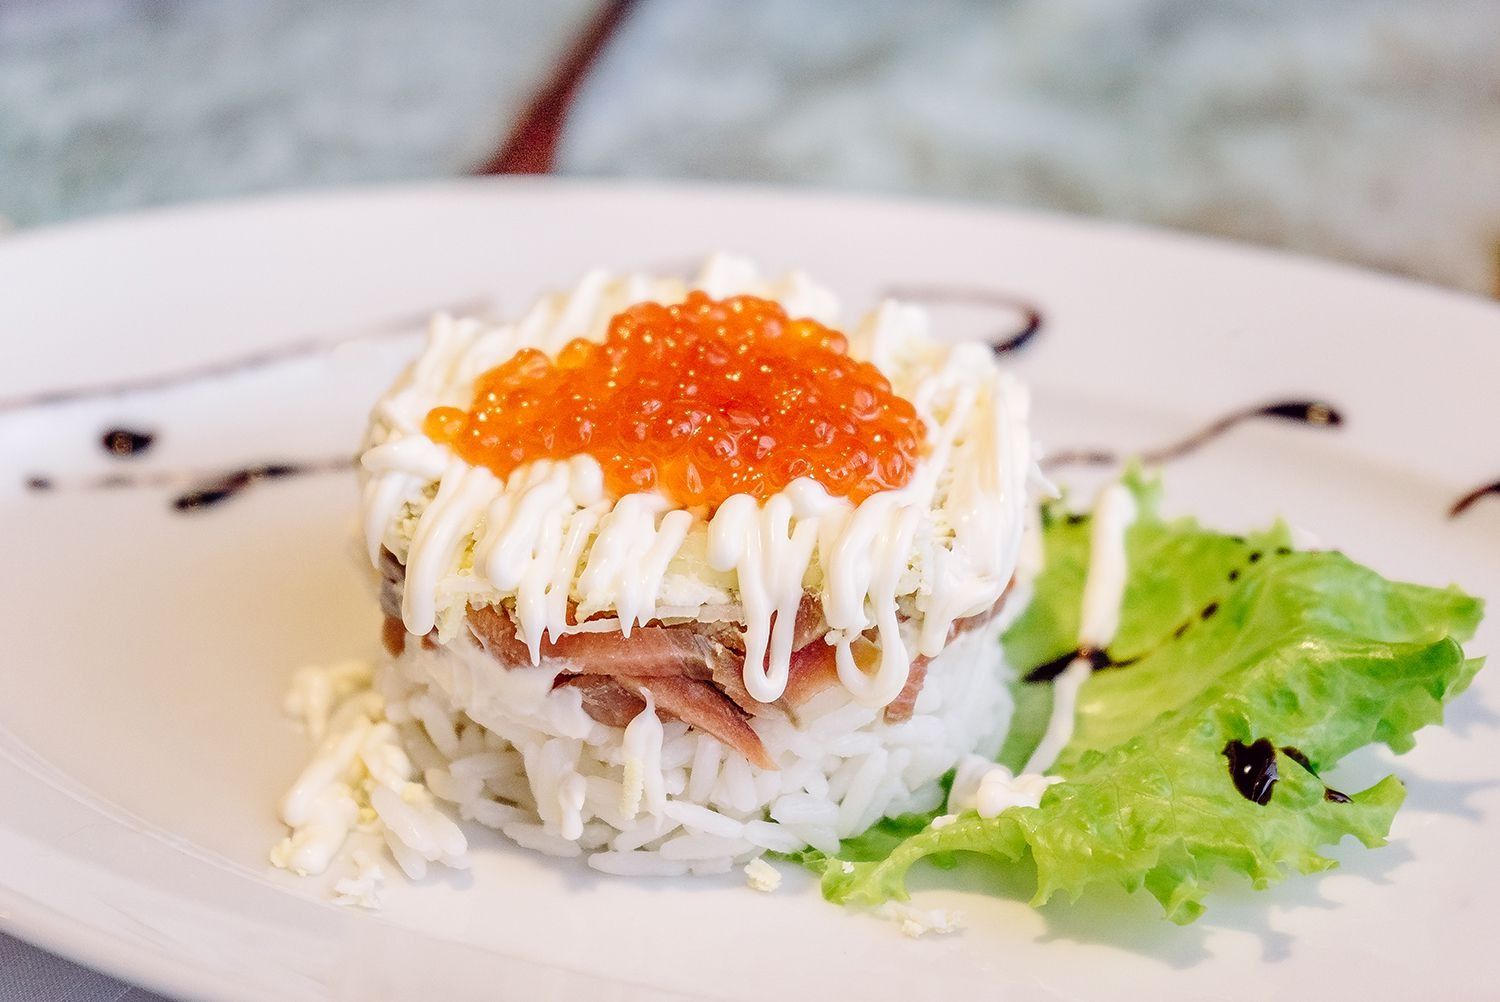 Russian food: a rice and fish salad with red caviar